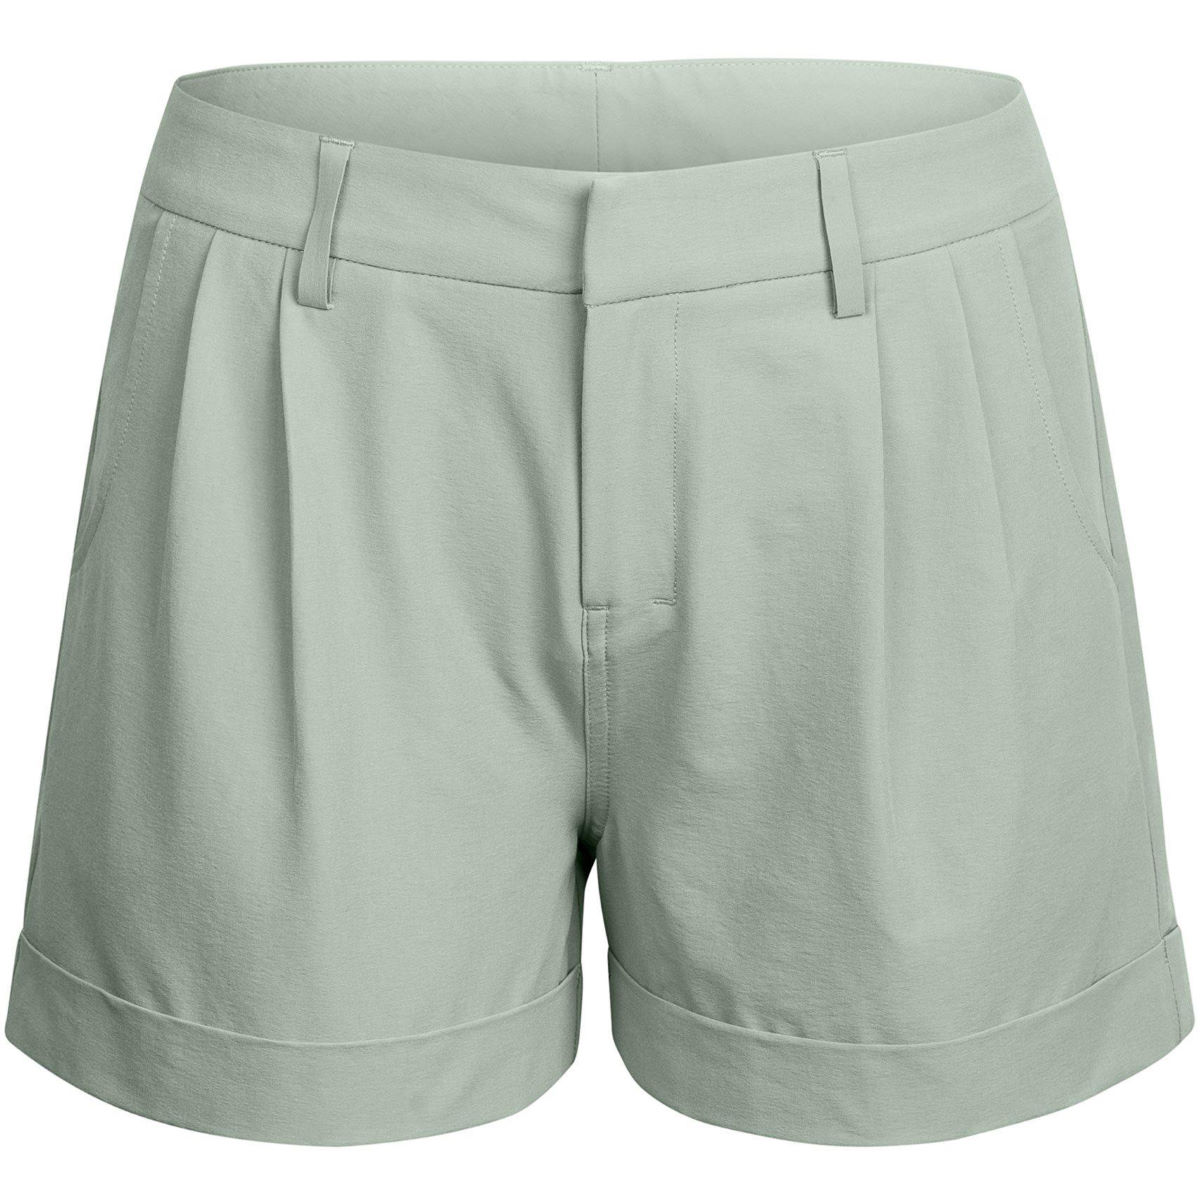 Short Femme Rapha Turn Up - M Grey/Bright Green | Shorts amples